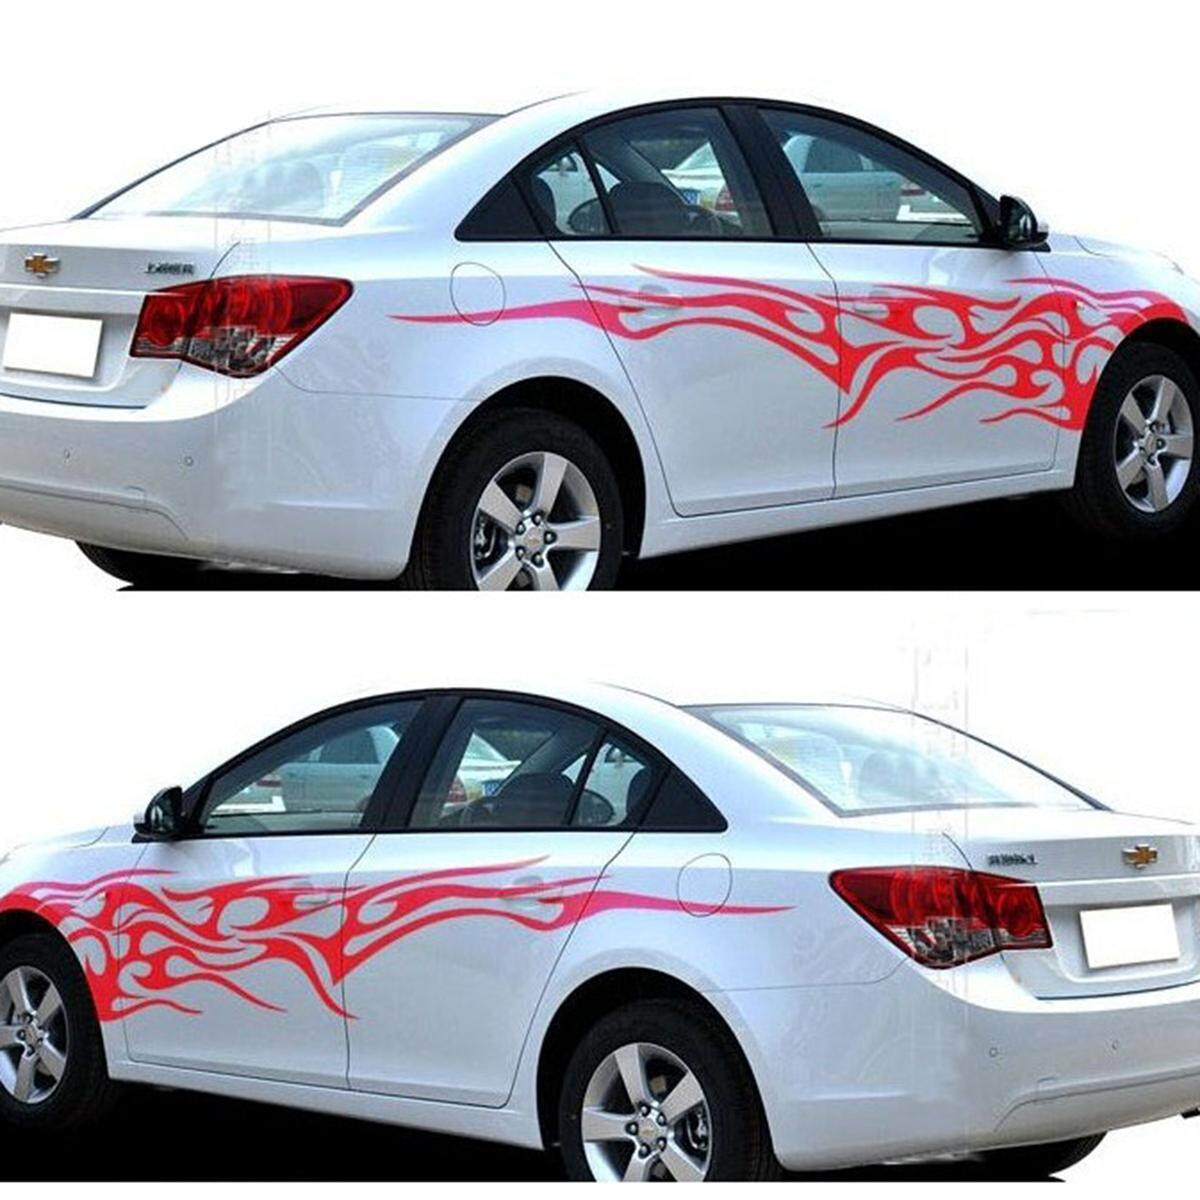 Product details of 2 pcs tribal flames graphics vinyl decal graphics car body stickers tuning decals flame red